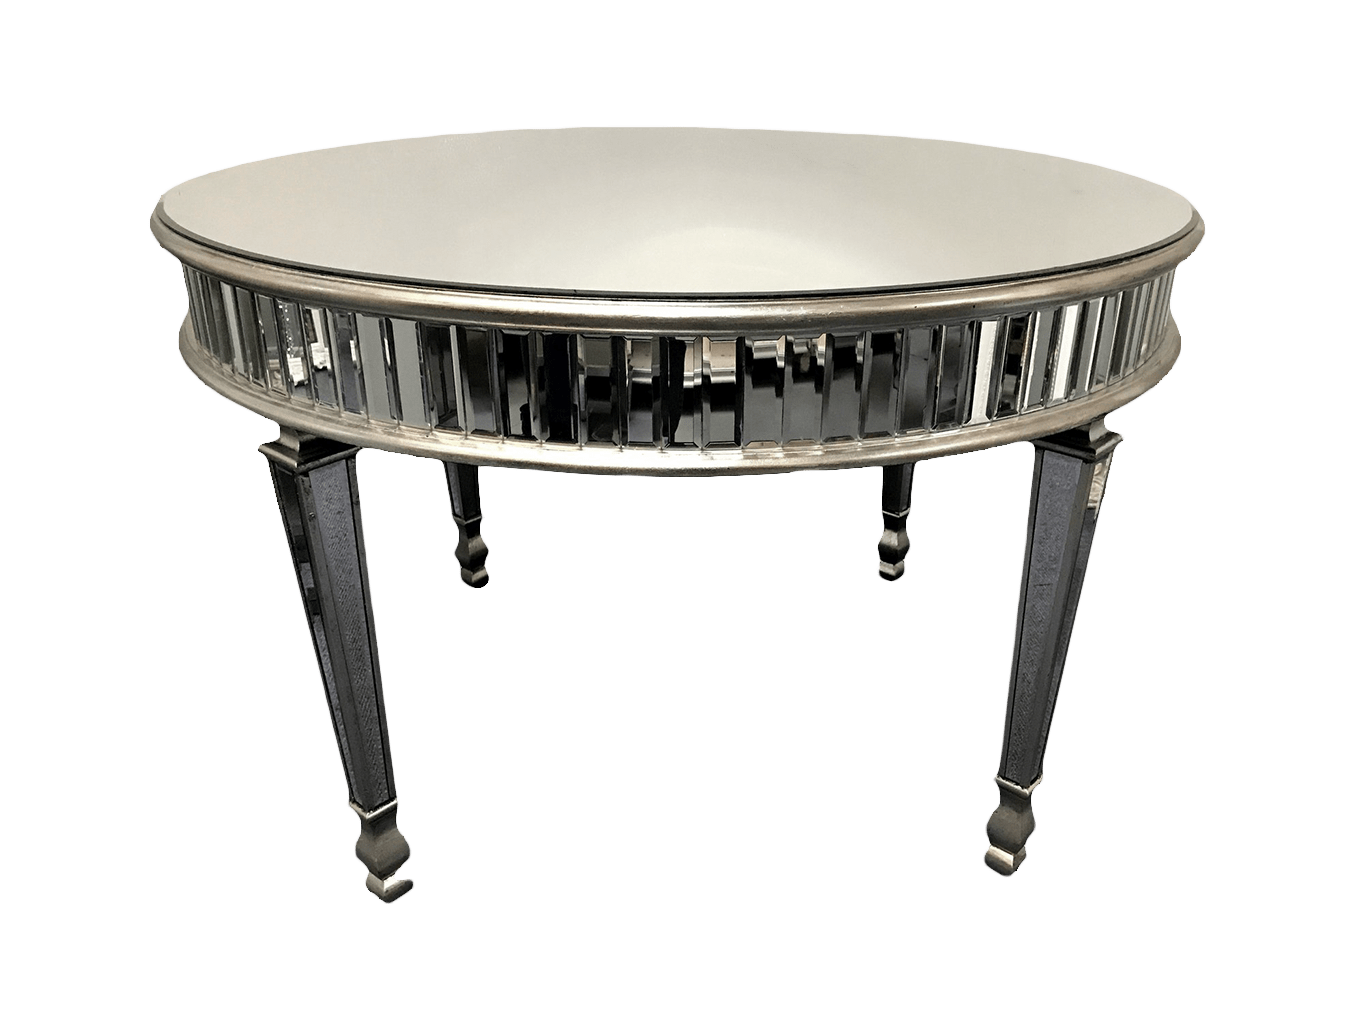 large Round Mirrored Dining Table, glass top, silver rim finish, fits 4 chairs